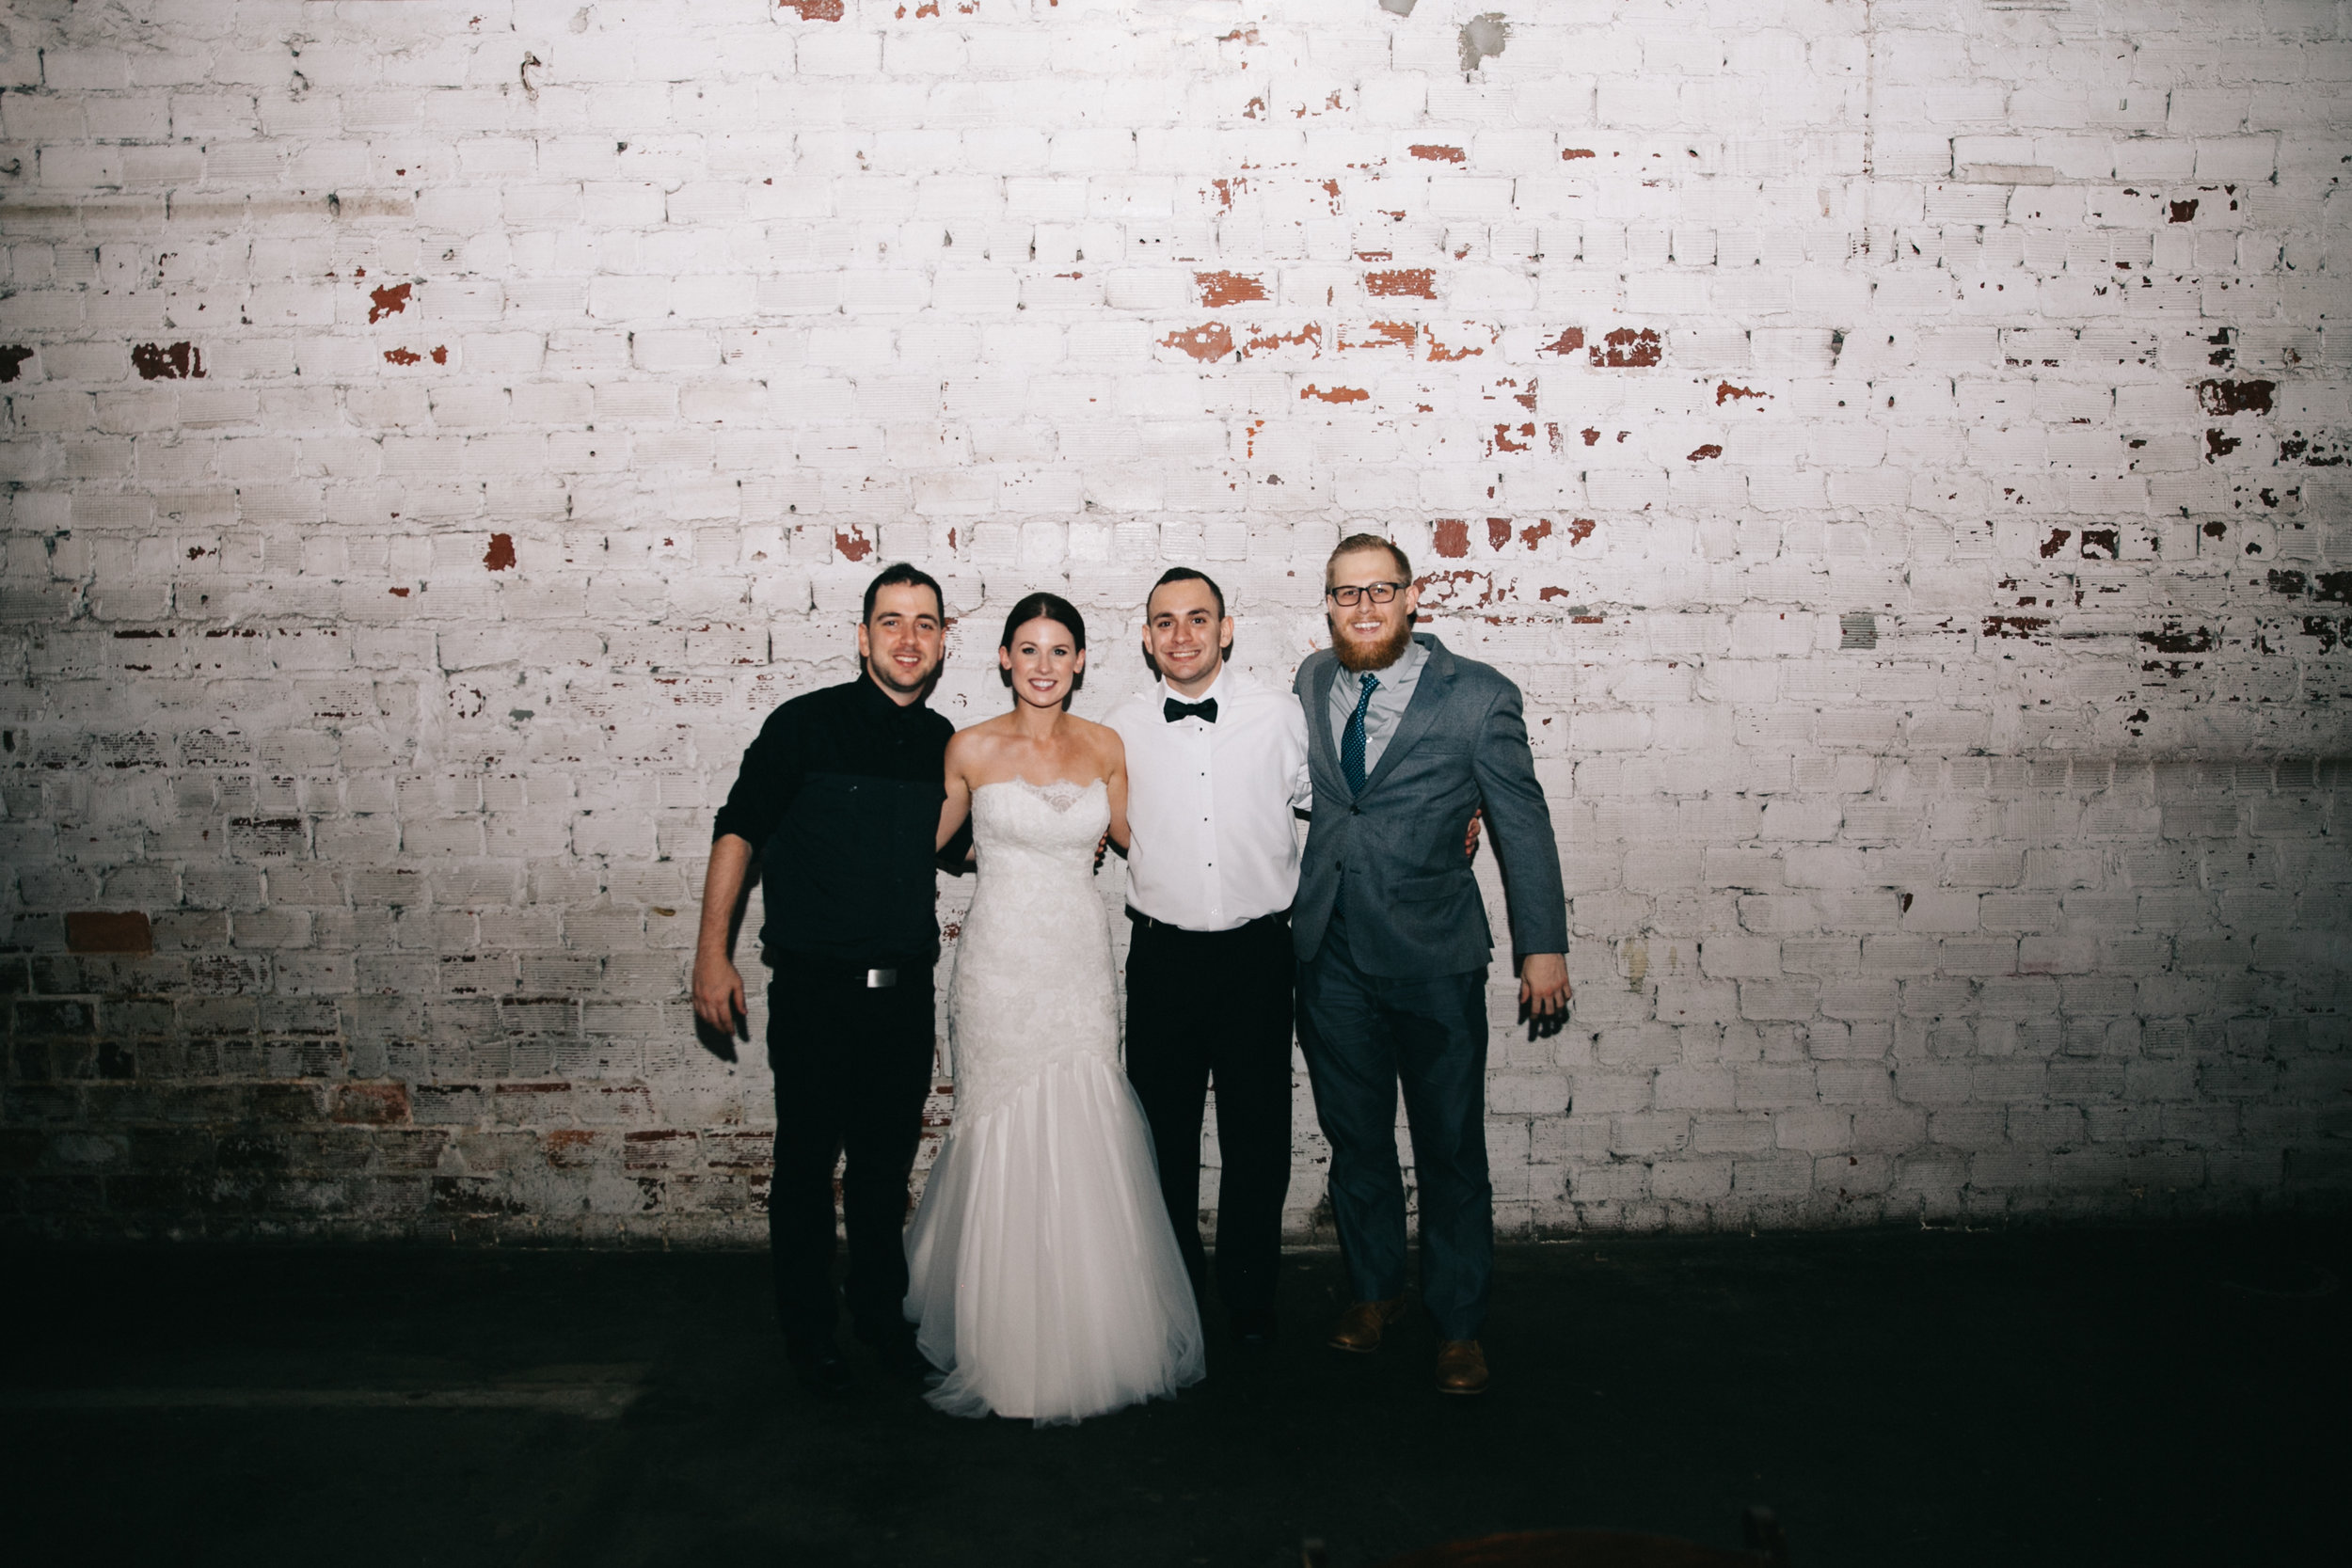 Tampa Industrial wedding at the Rialto Theater_186.jpg